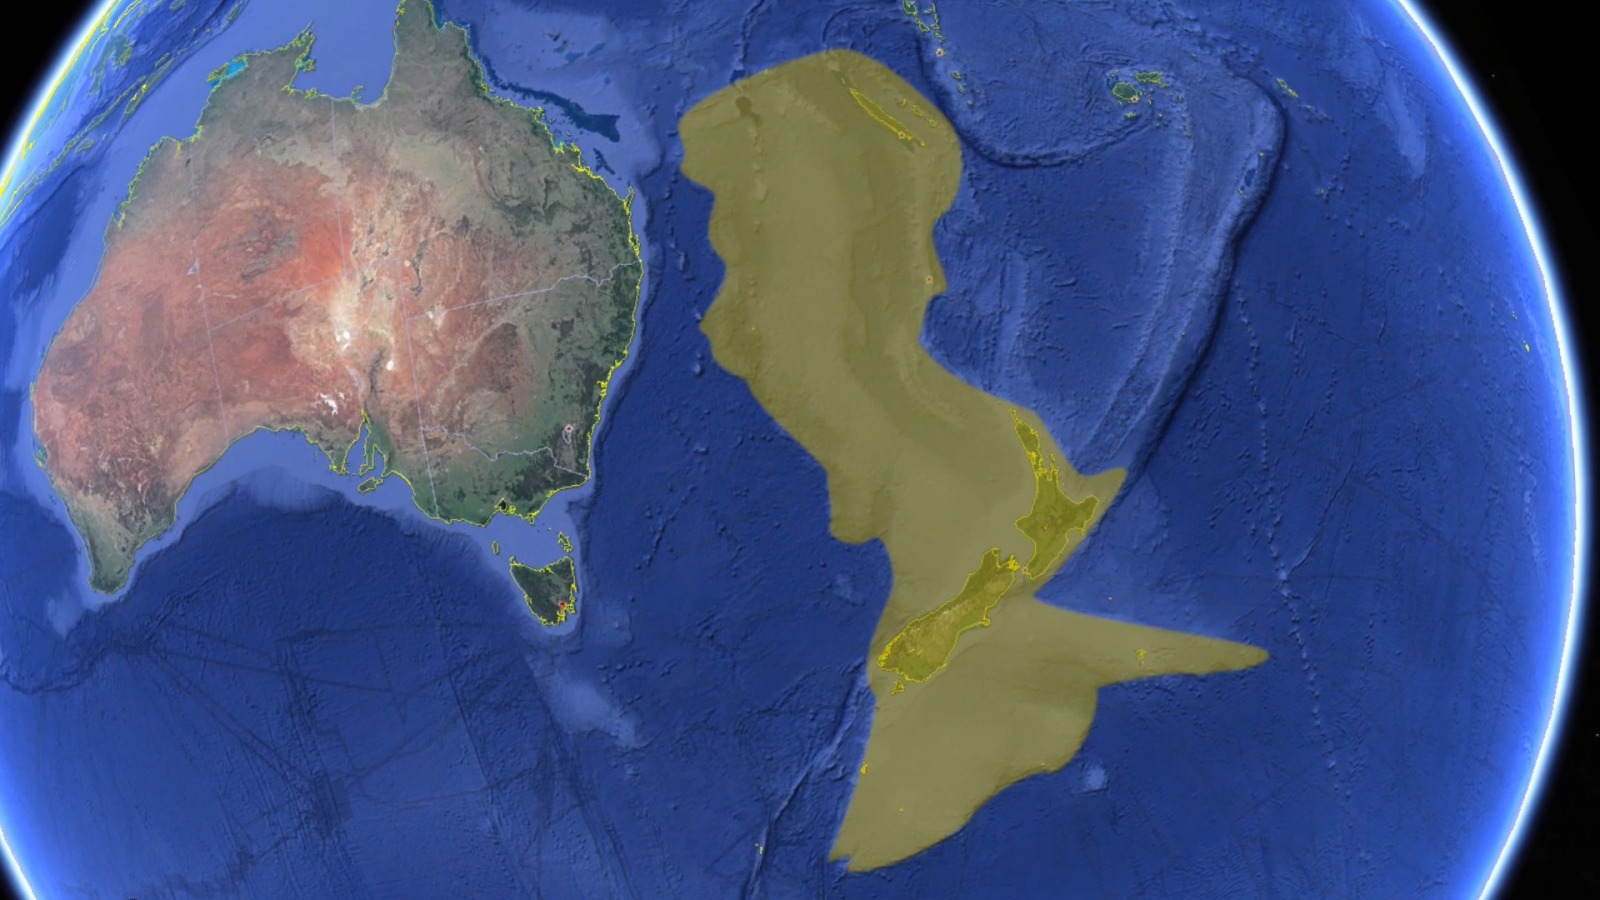 hidden-continent-zealandia-sunk-as-the-pacific-ring-of-fire-formed-drilling-reveals